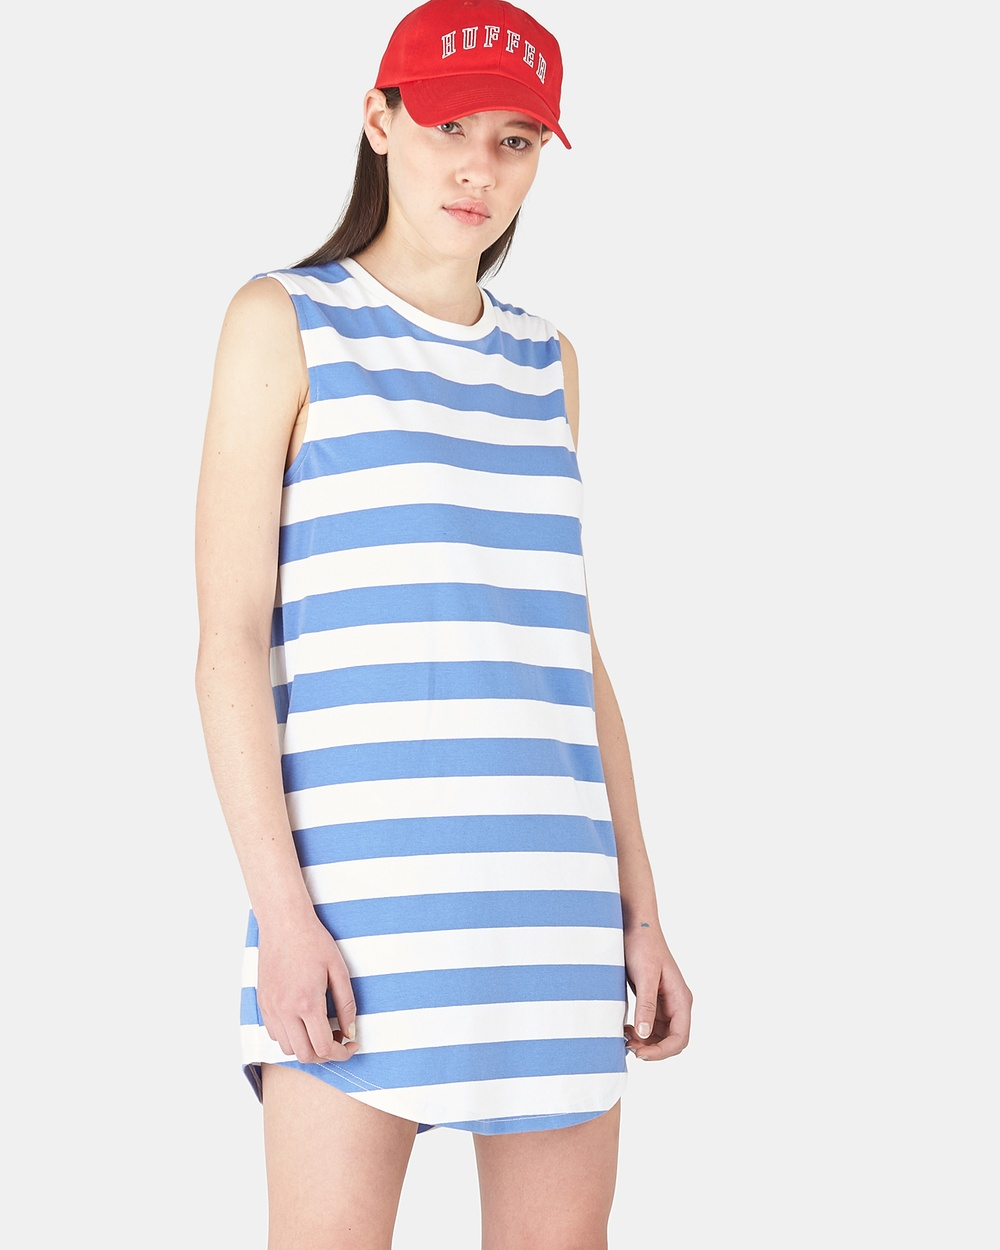 Huffer BLUE/WHITE Plaza S-S Hearts Dress